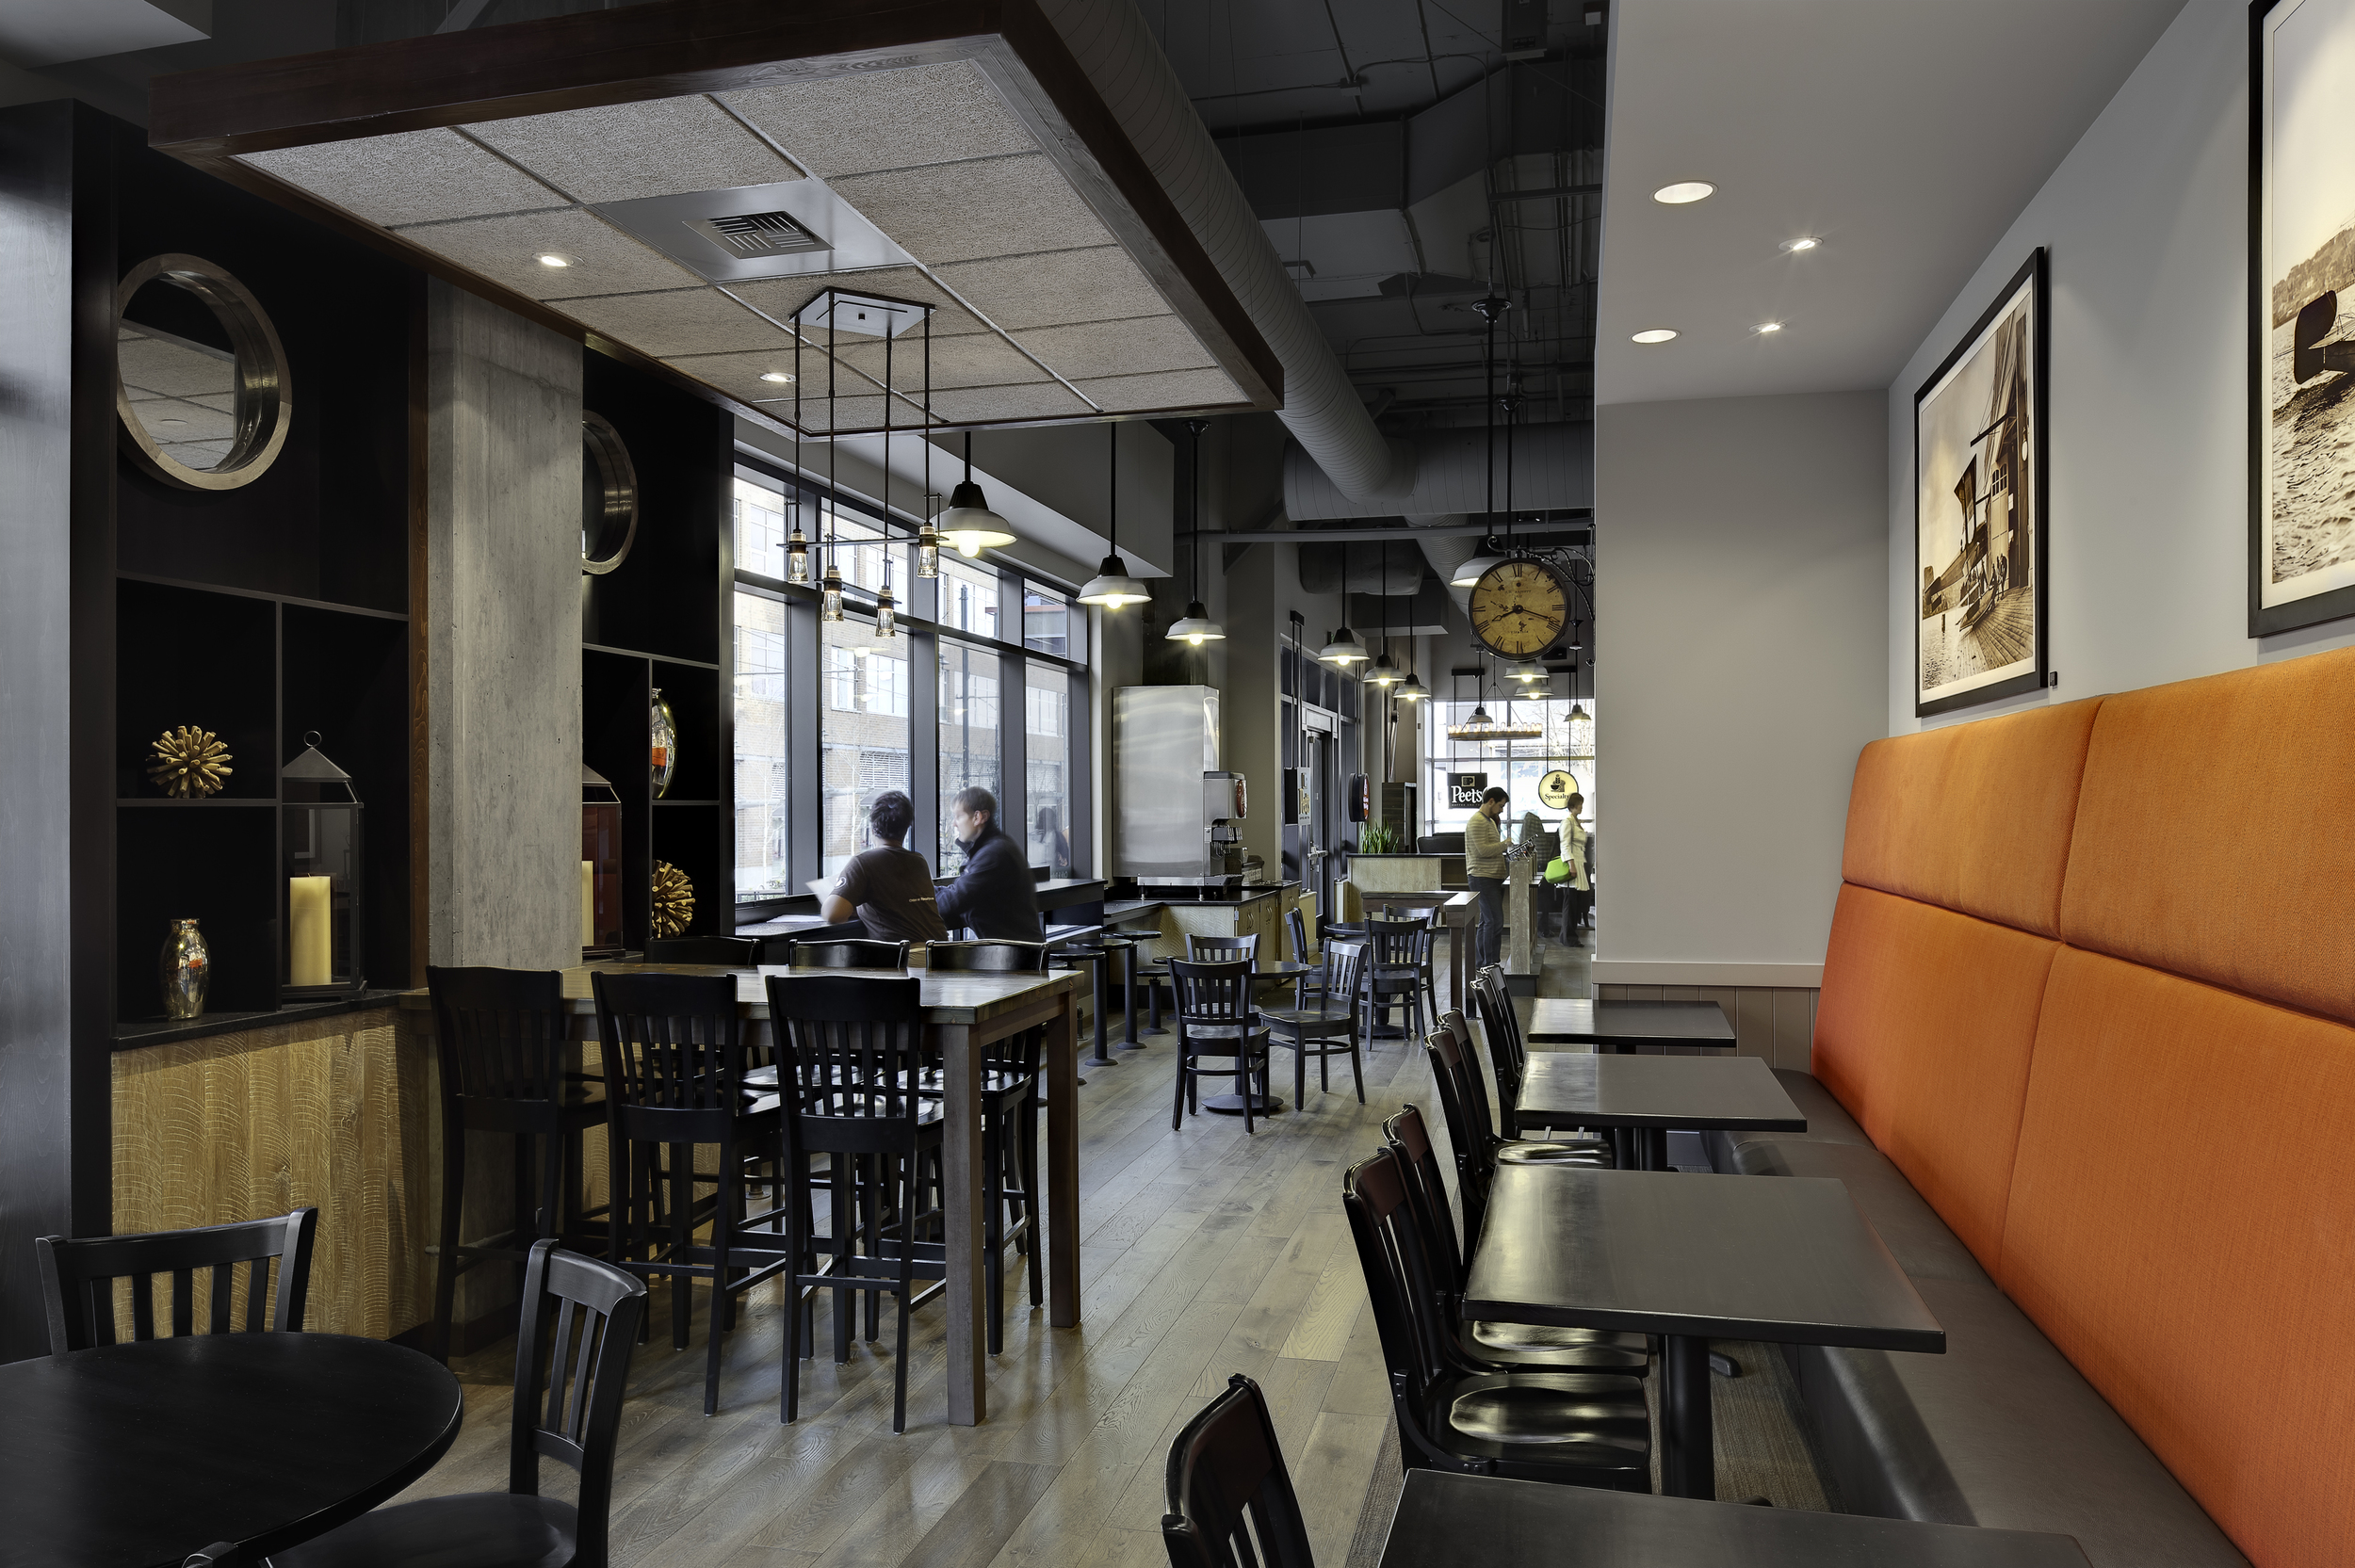 Specialty's Cafe in South Lake Union - Interior 4.jpg